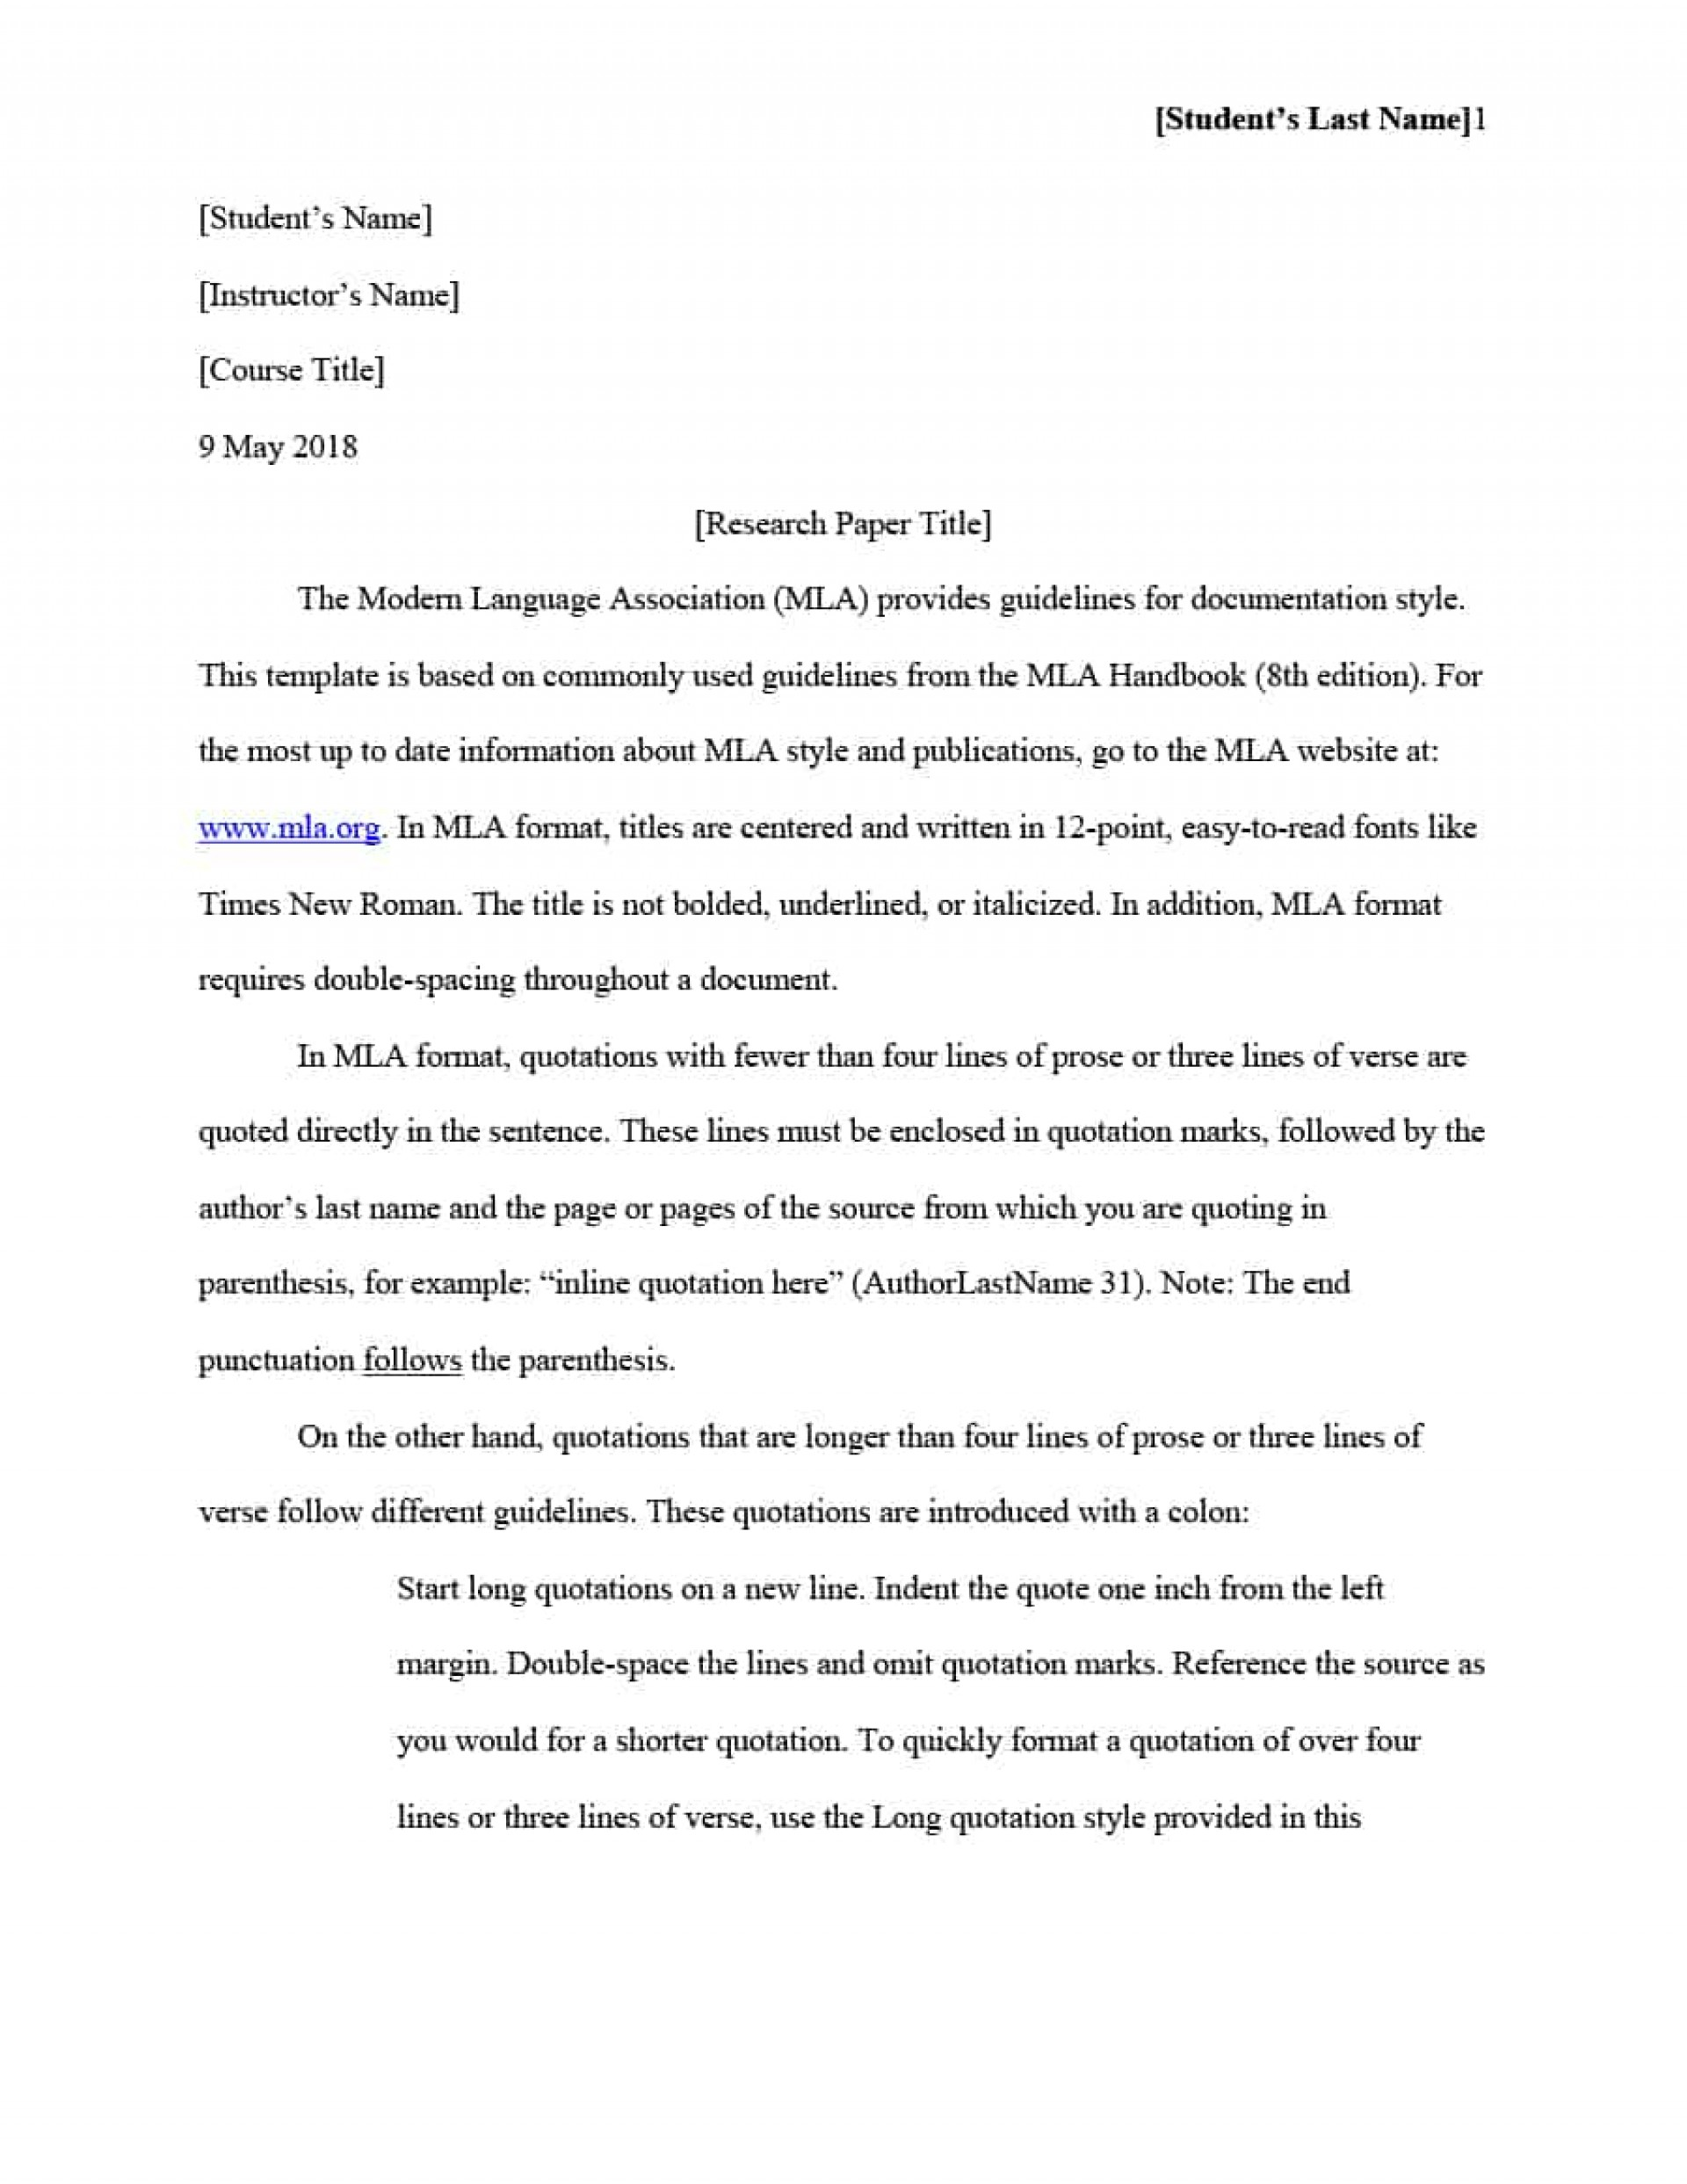 001 Research Paper Mla Format Template In Excellent Style Example Title Page Outline 1920